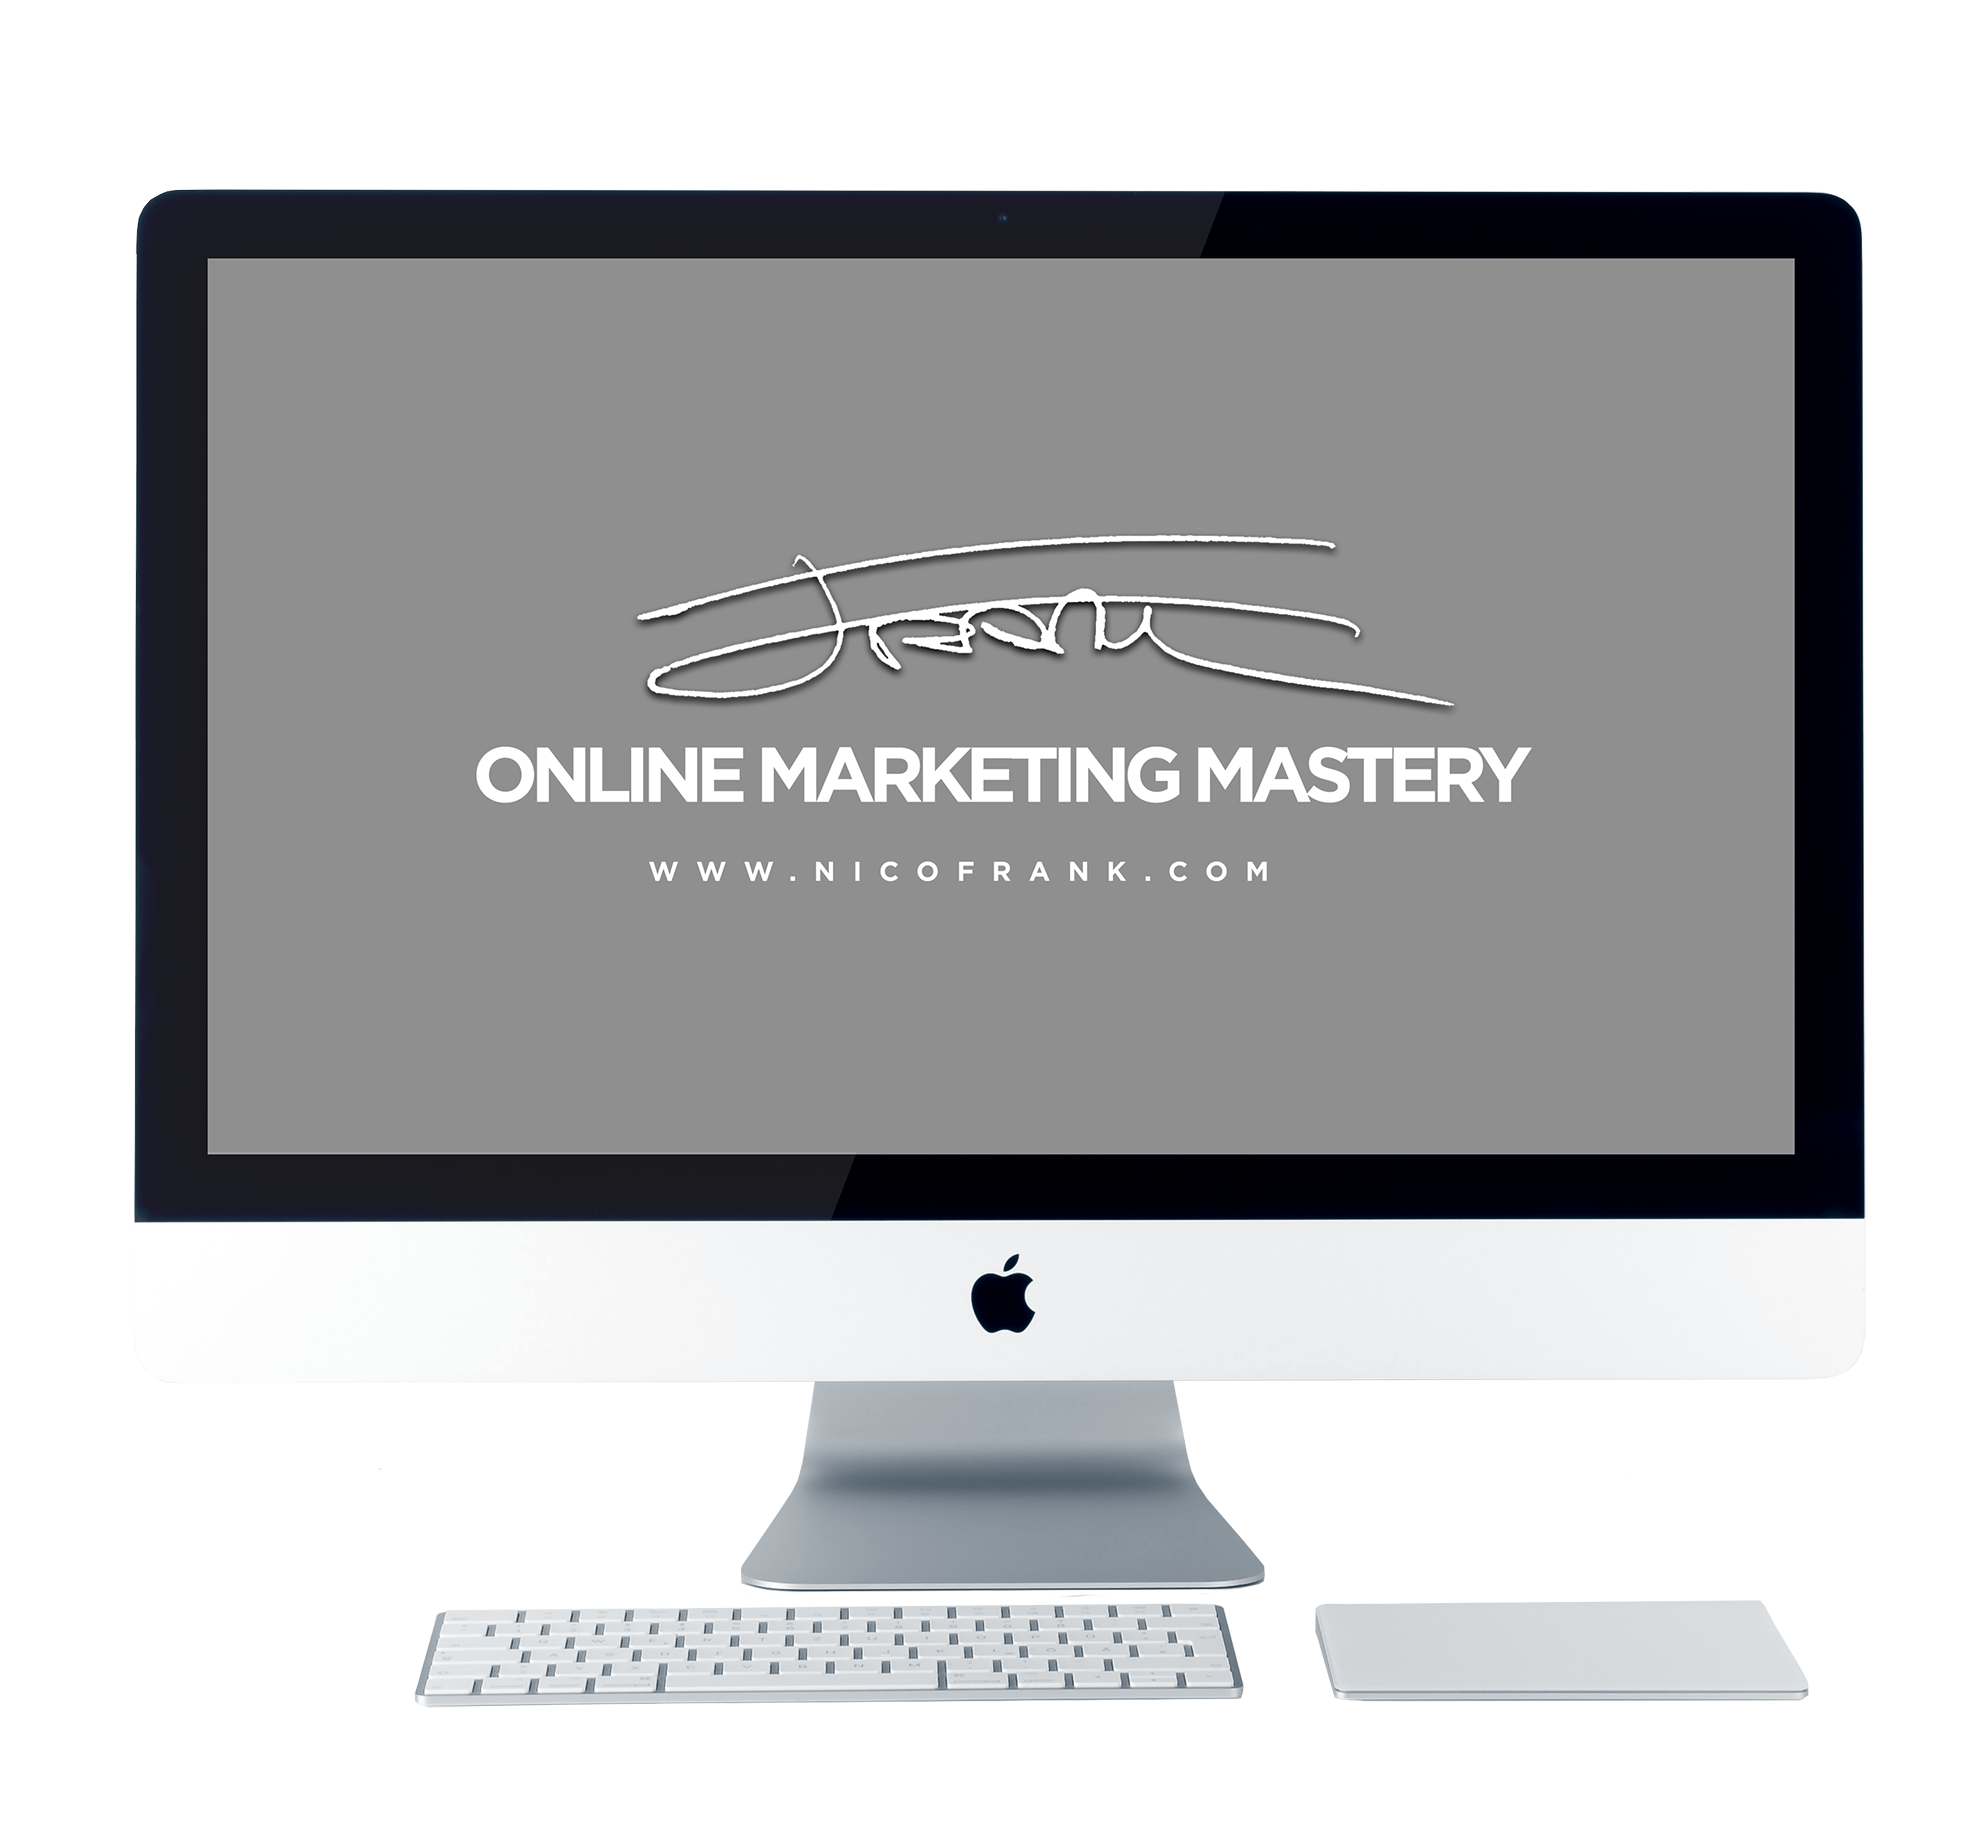 Nico Frank Online Marketing Mastery Consulting